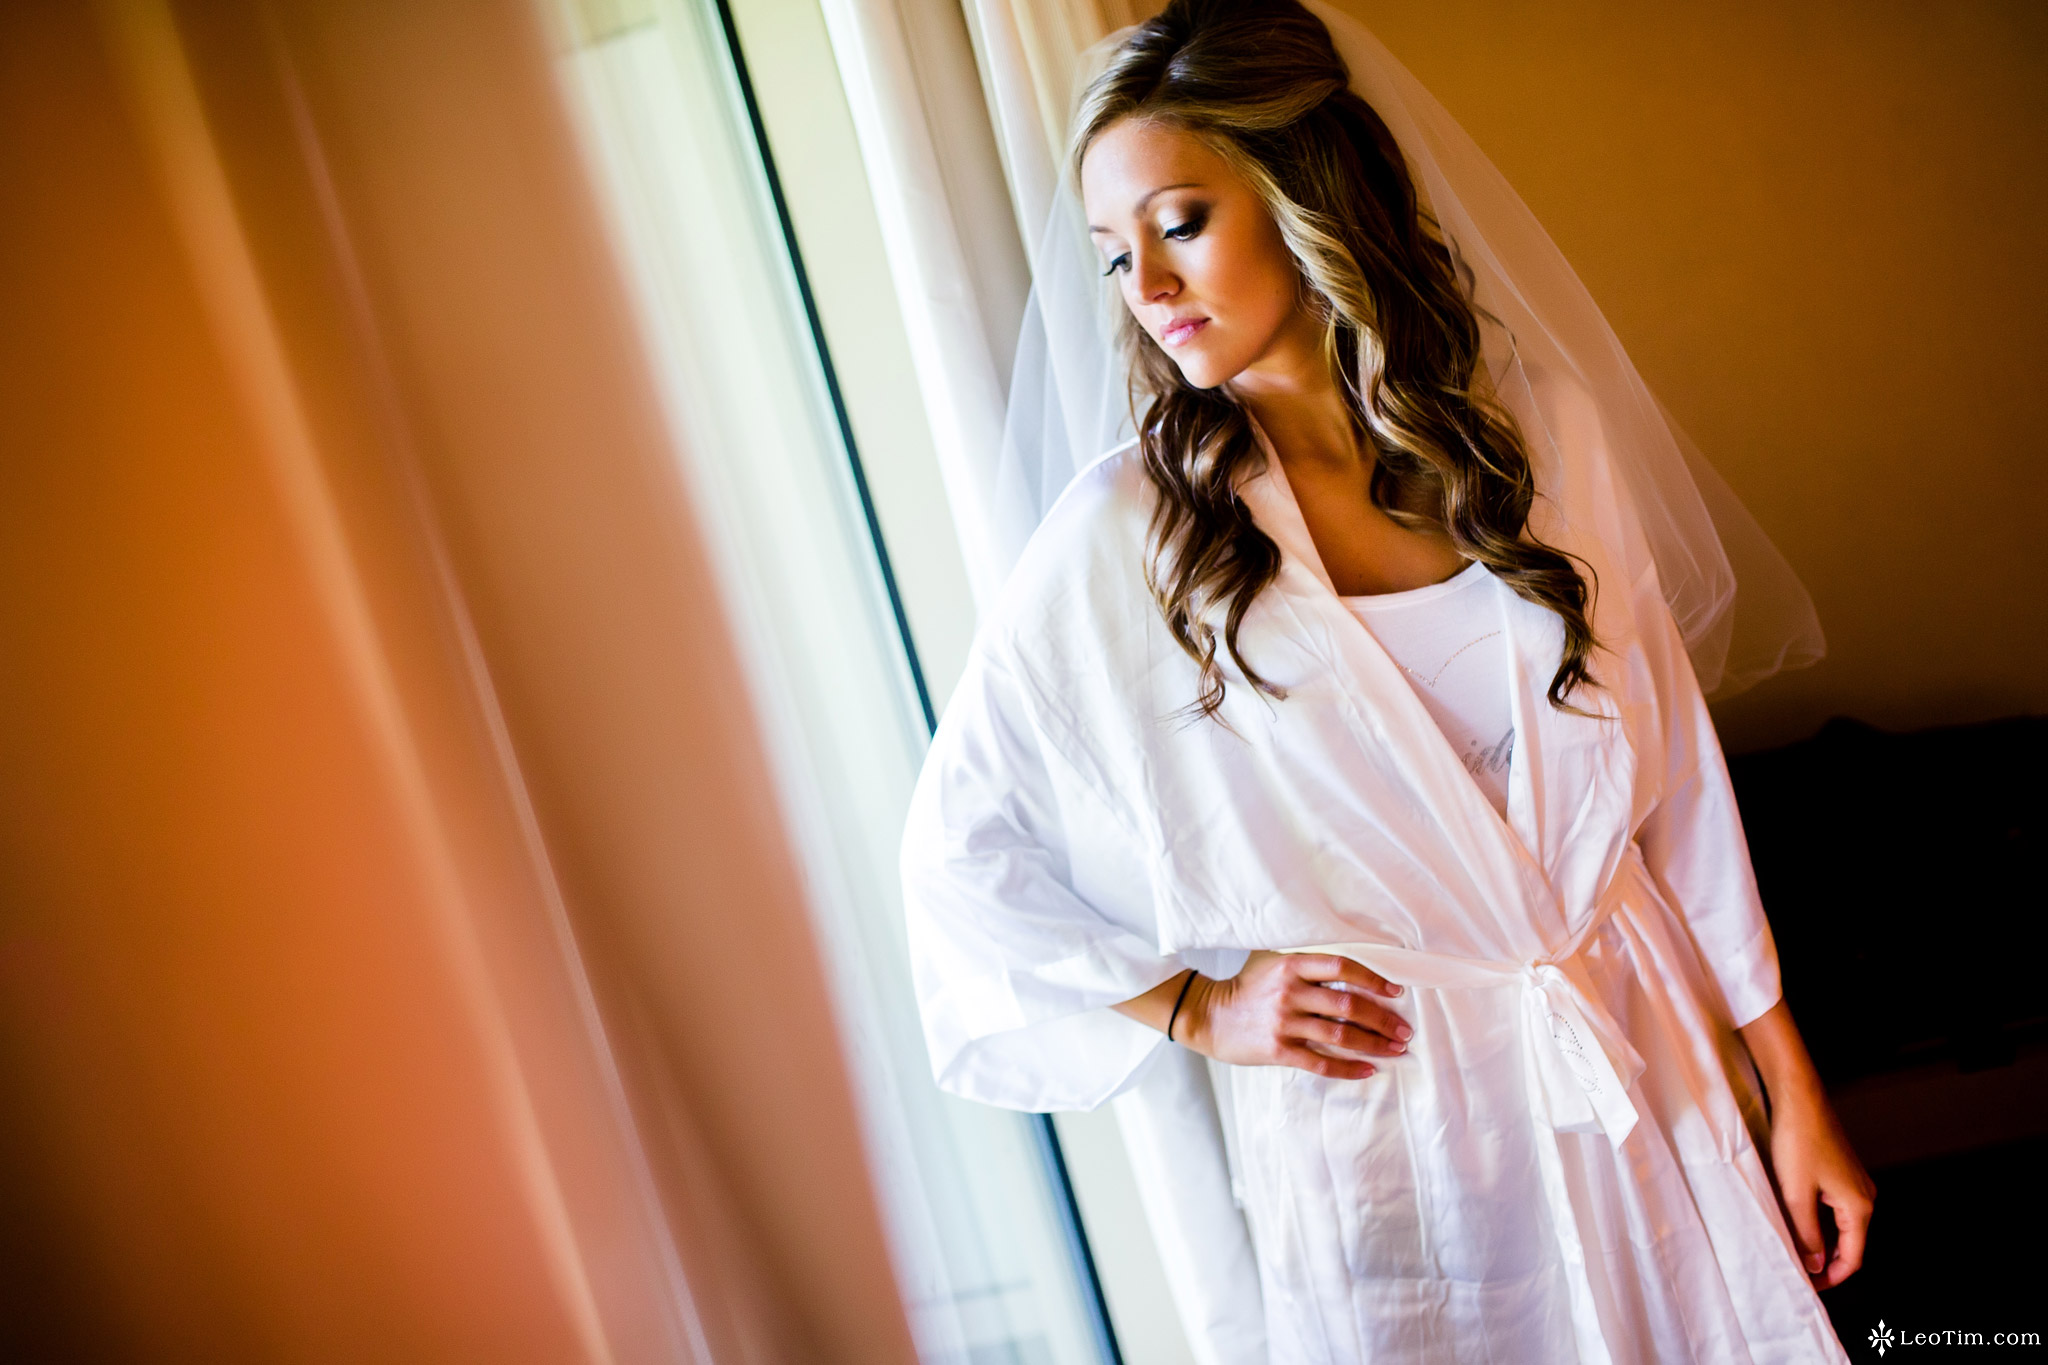 Bryon_Laura_Wedding_0237